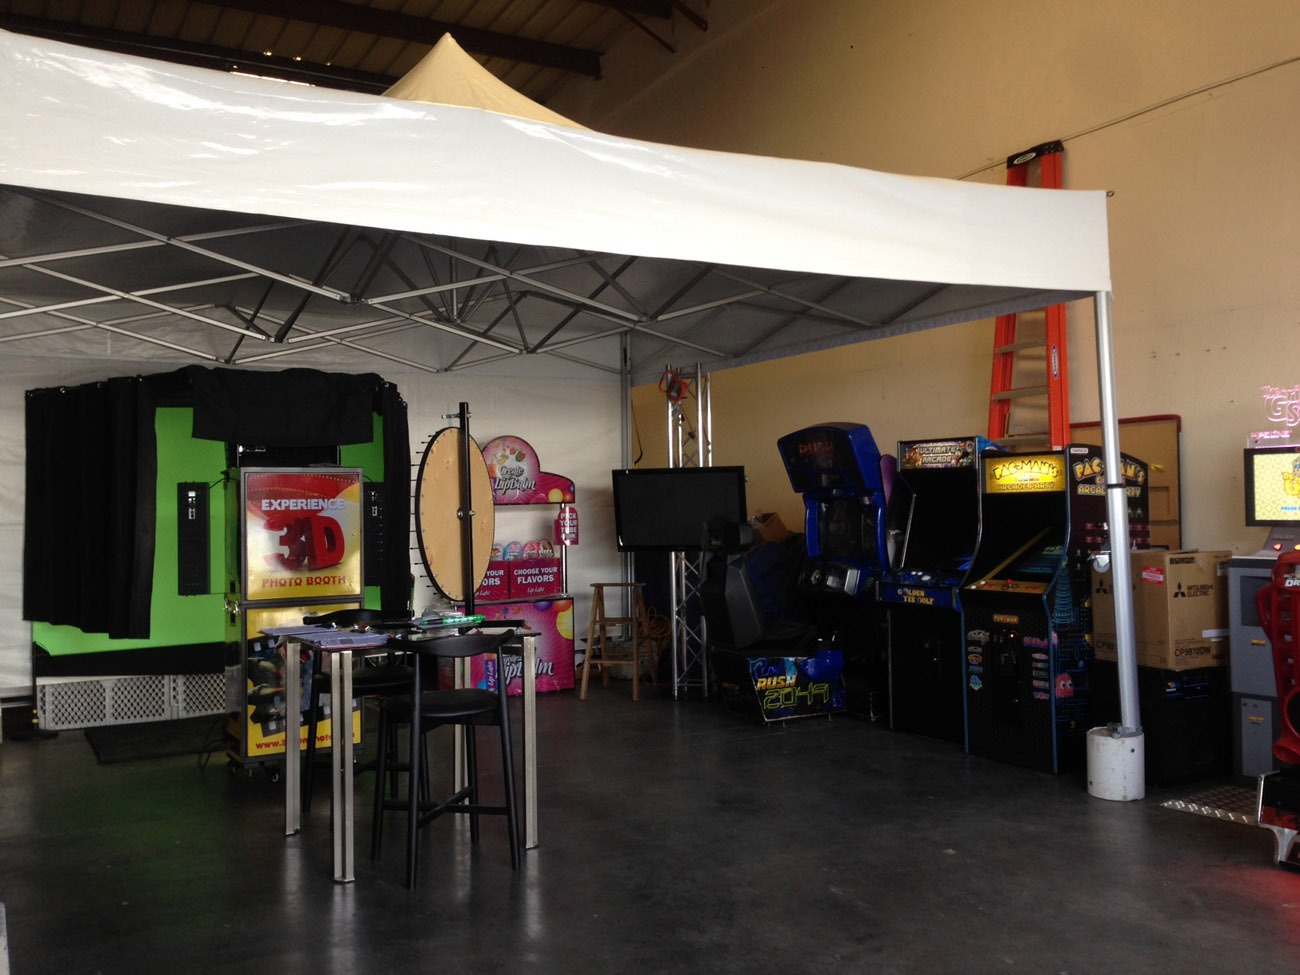 17ft by 17ft Tent Rental